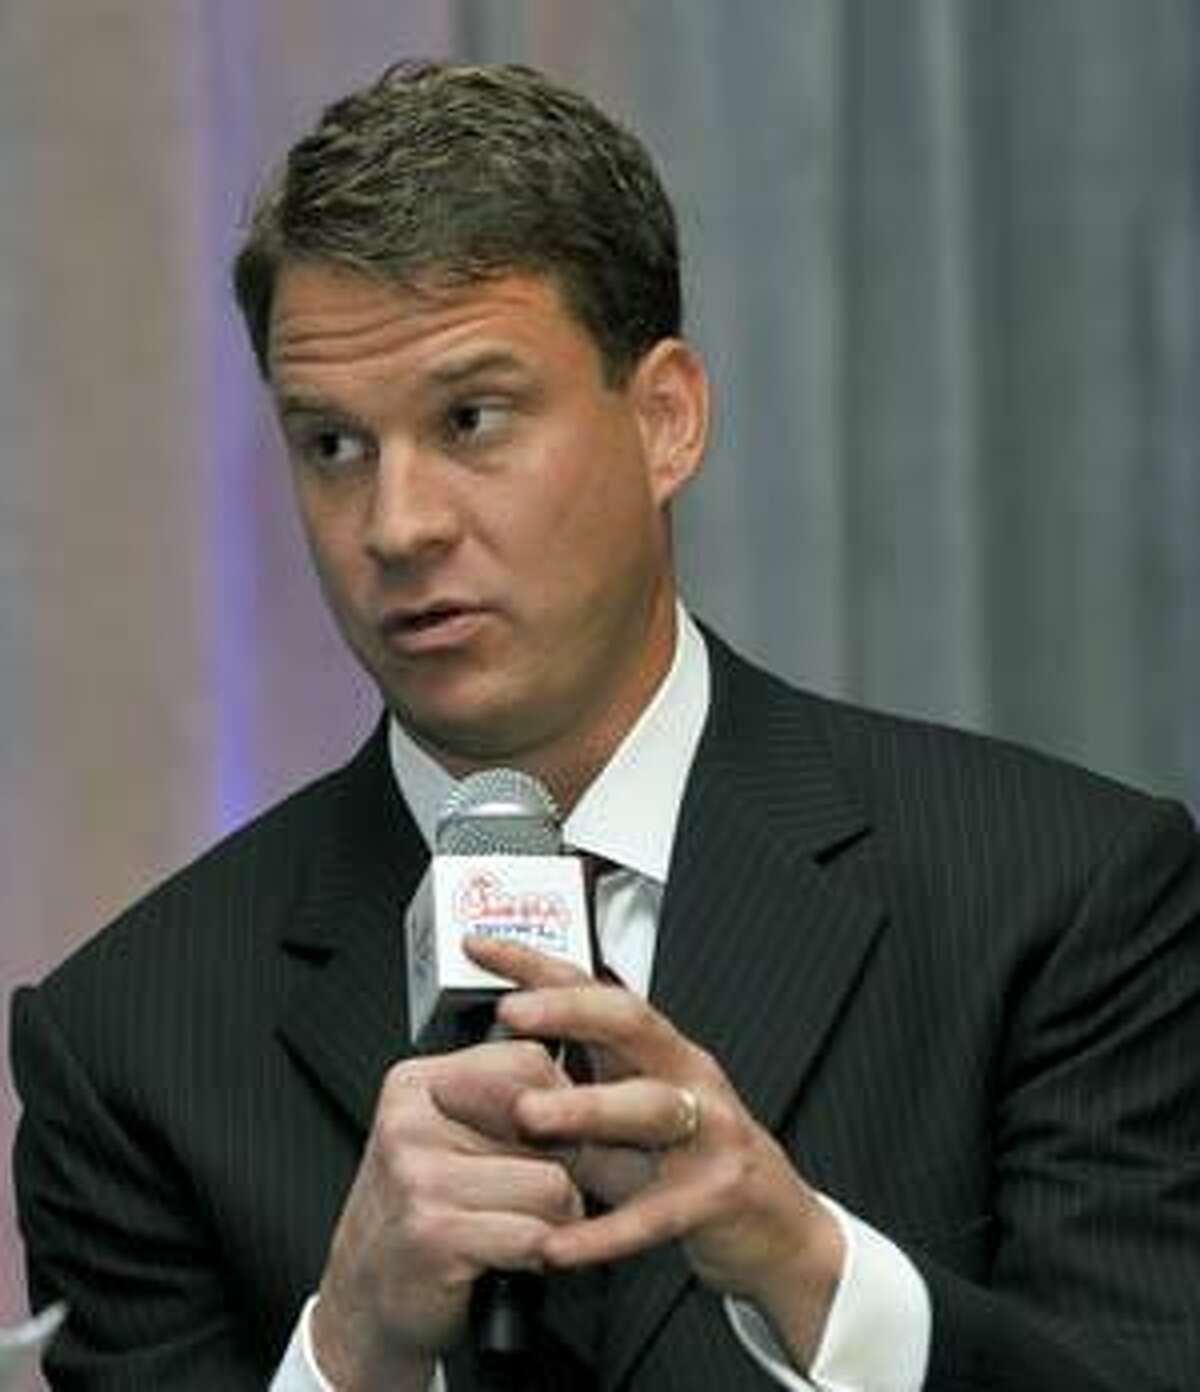 AP Tennessee coach Lane Kiffin speaks during the Chick-fil-A Bowl coaches luncheon Thursday in Atlanta. Tennessee will face Virginia Tech at the 2009 Chick-fil-A Bowl.